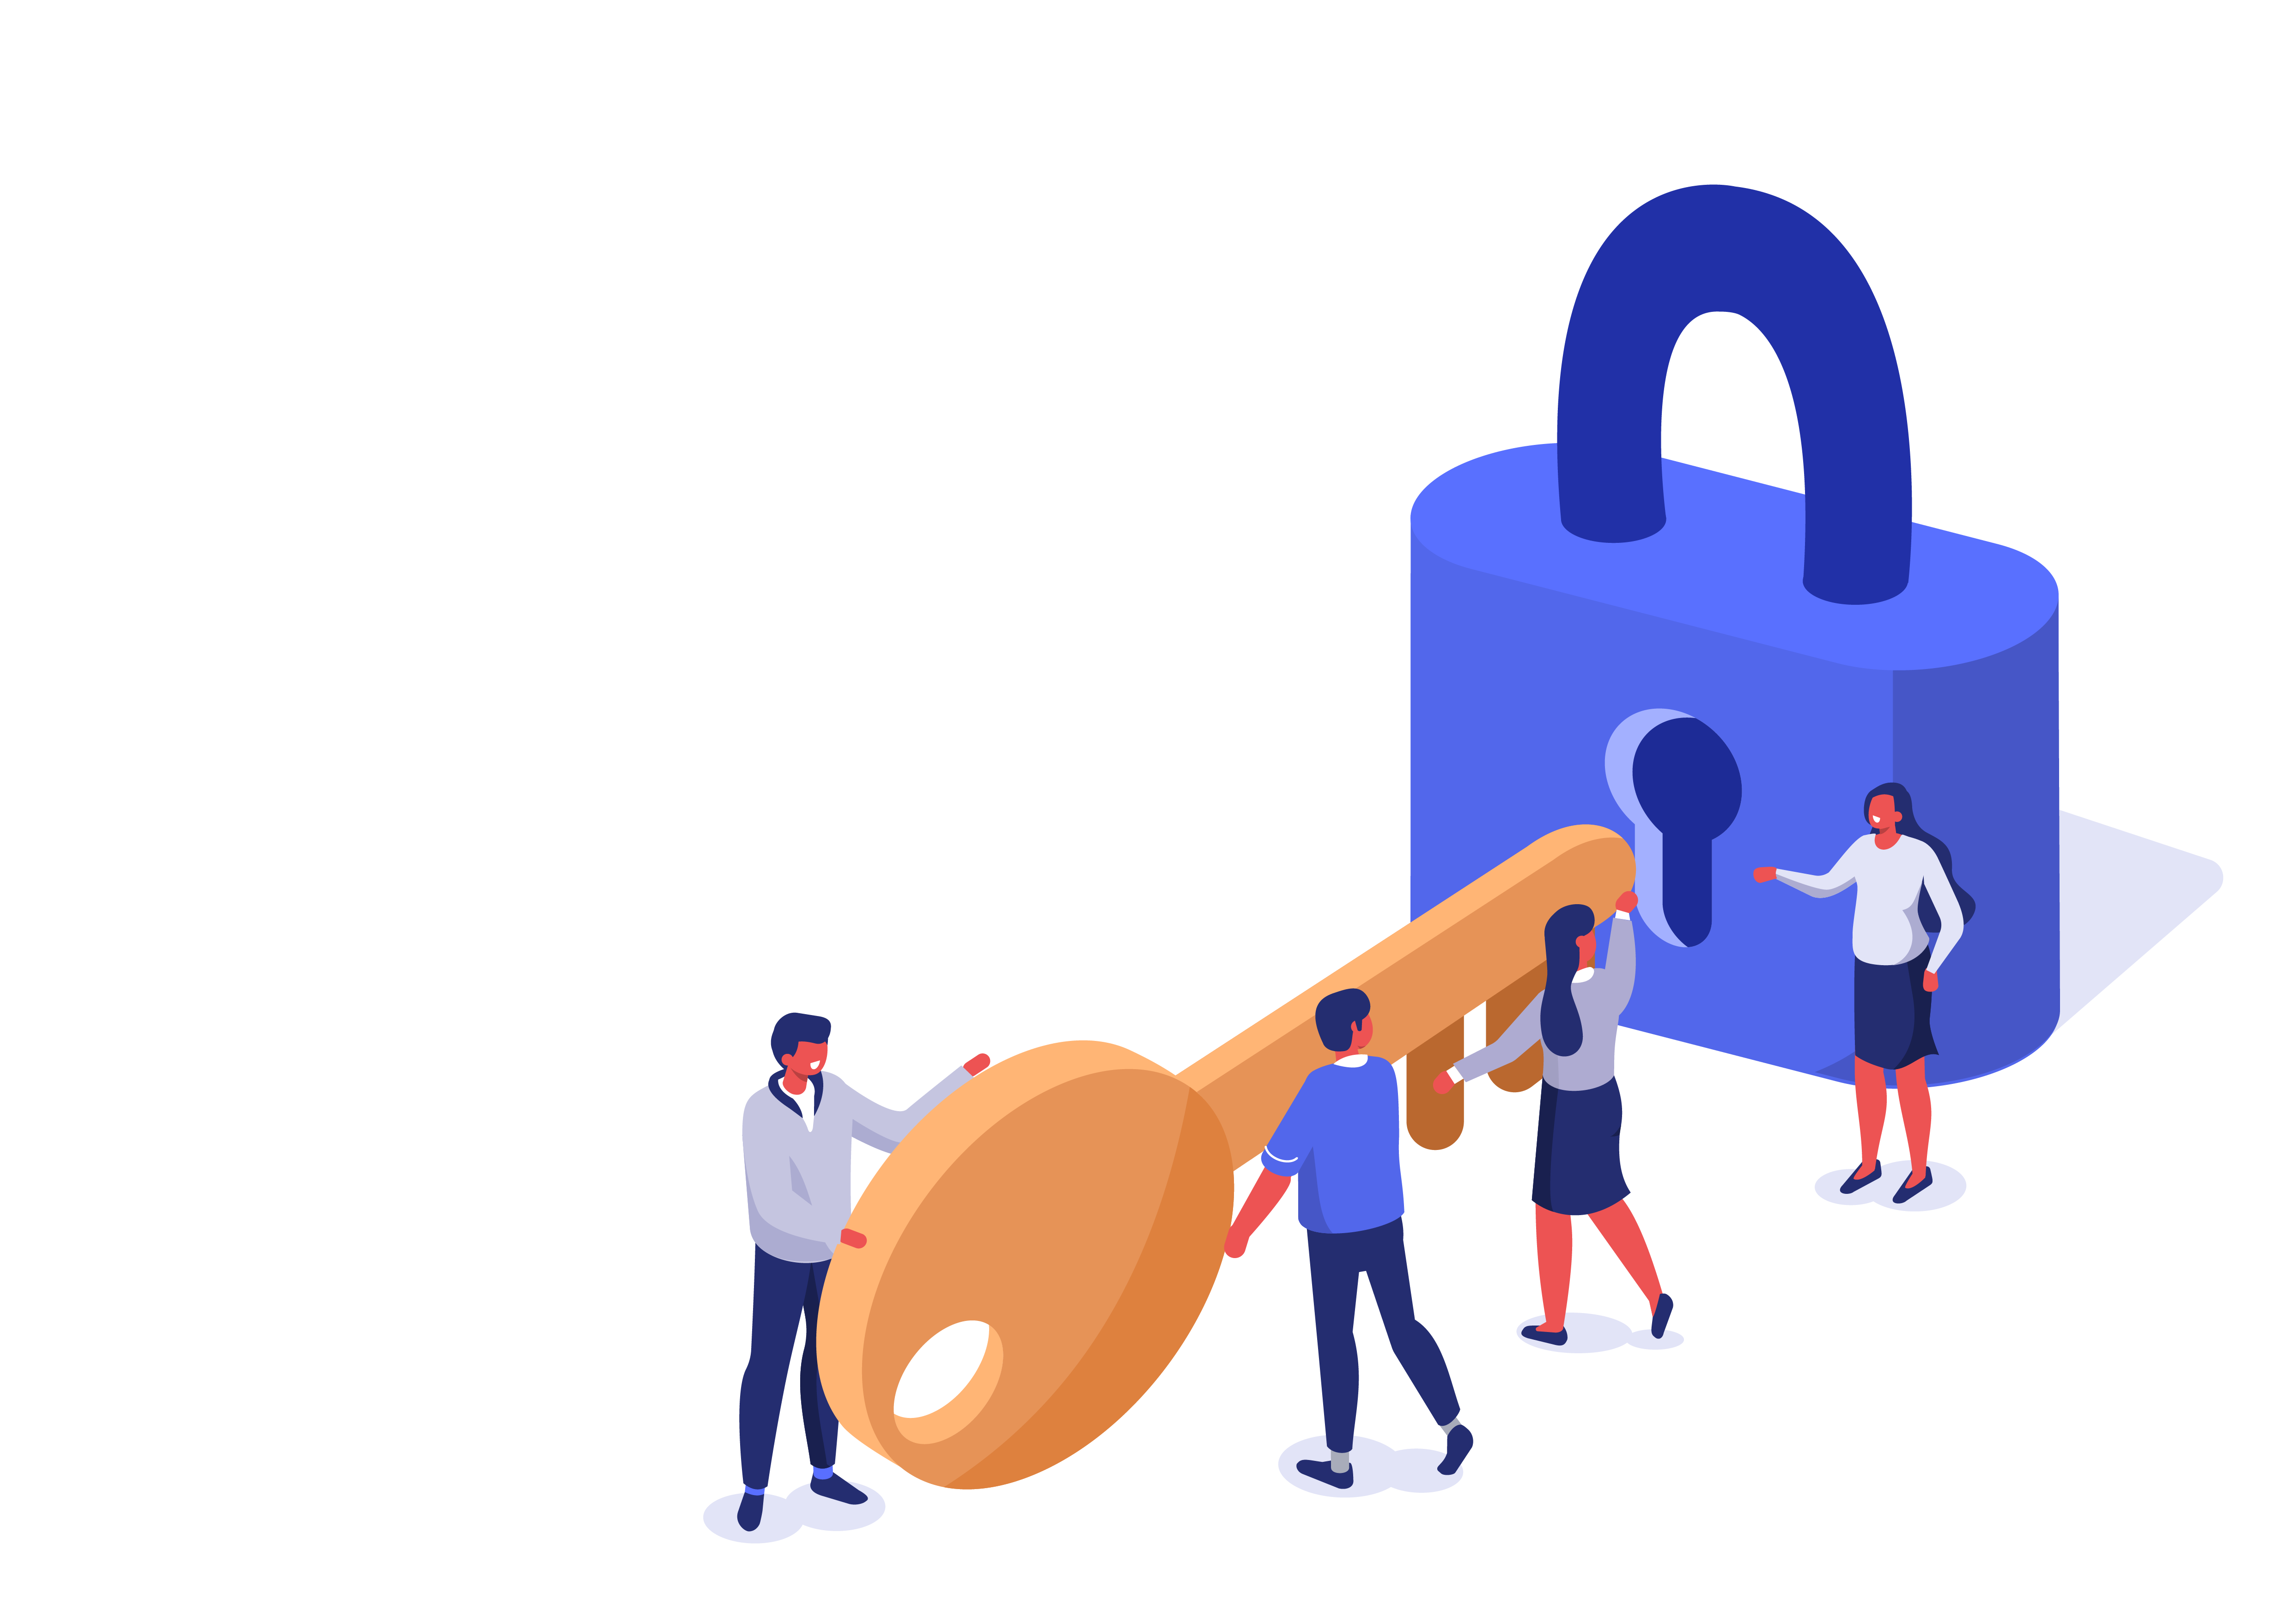 Illustration of business colleagues trying to fit a key